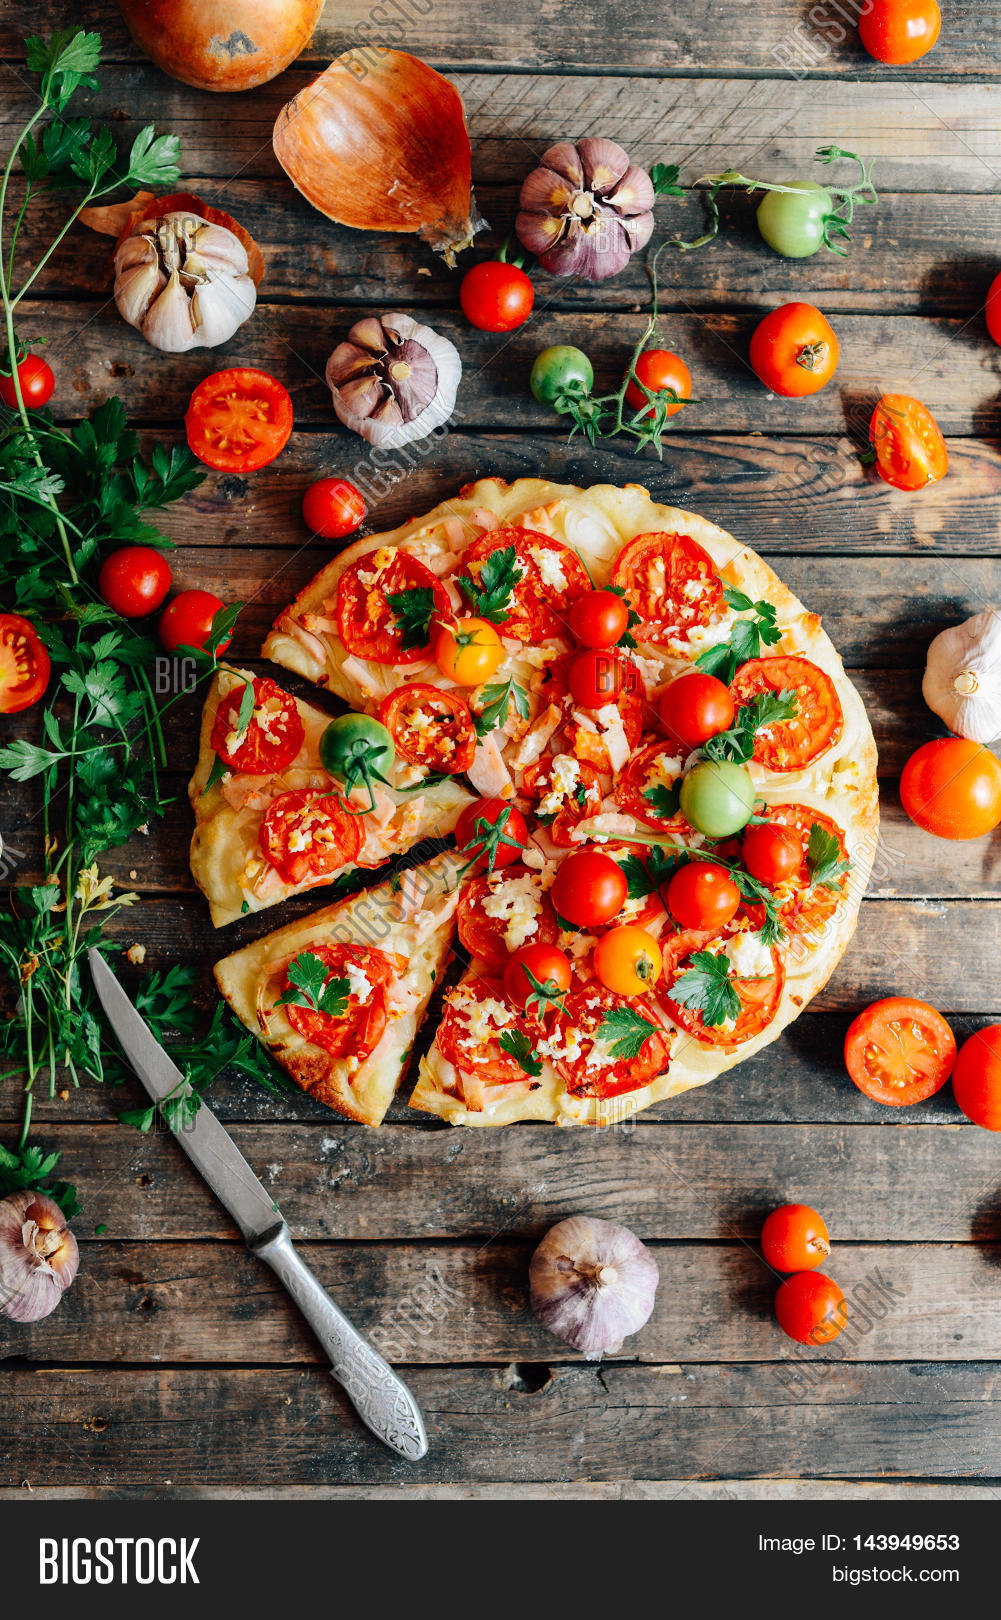 Veggie pizza with tomatoes shallot and fresh herbs